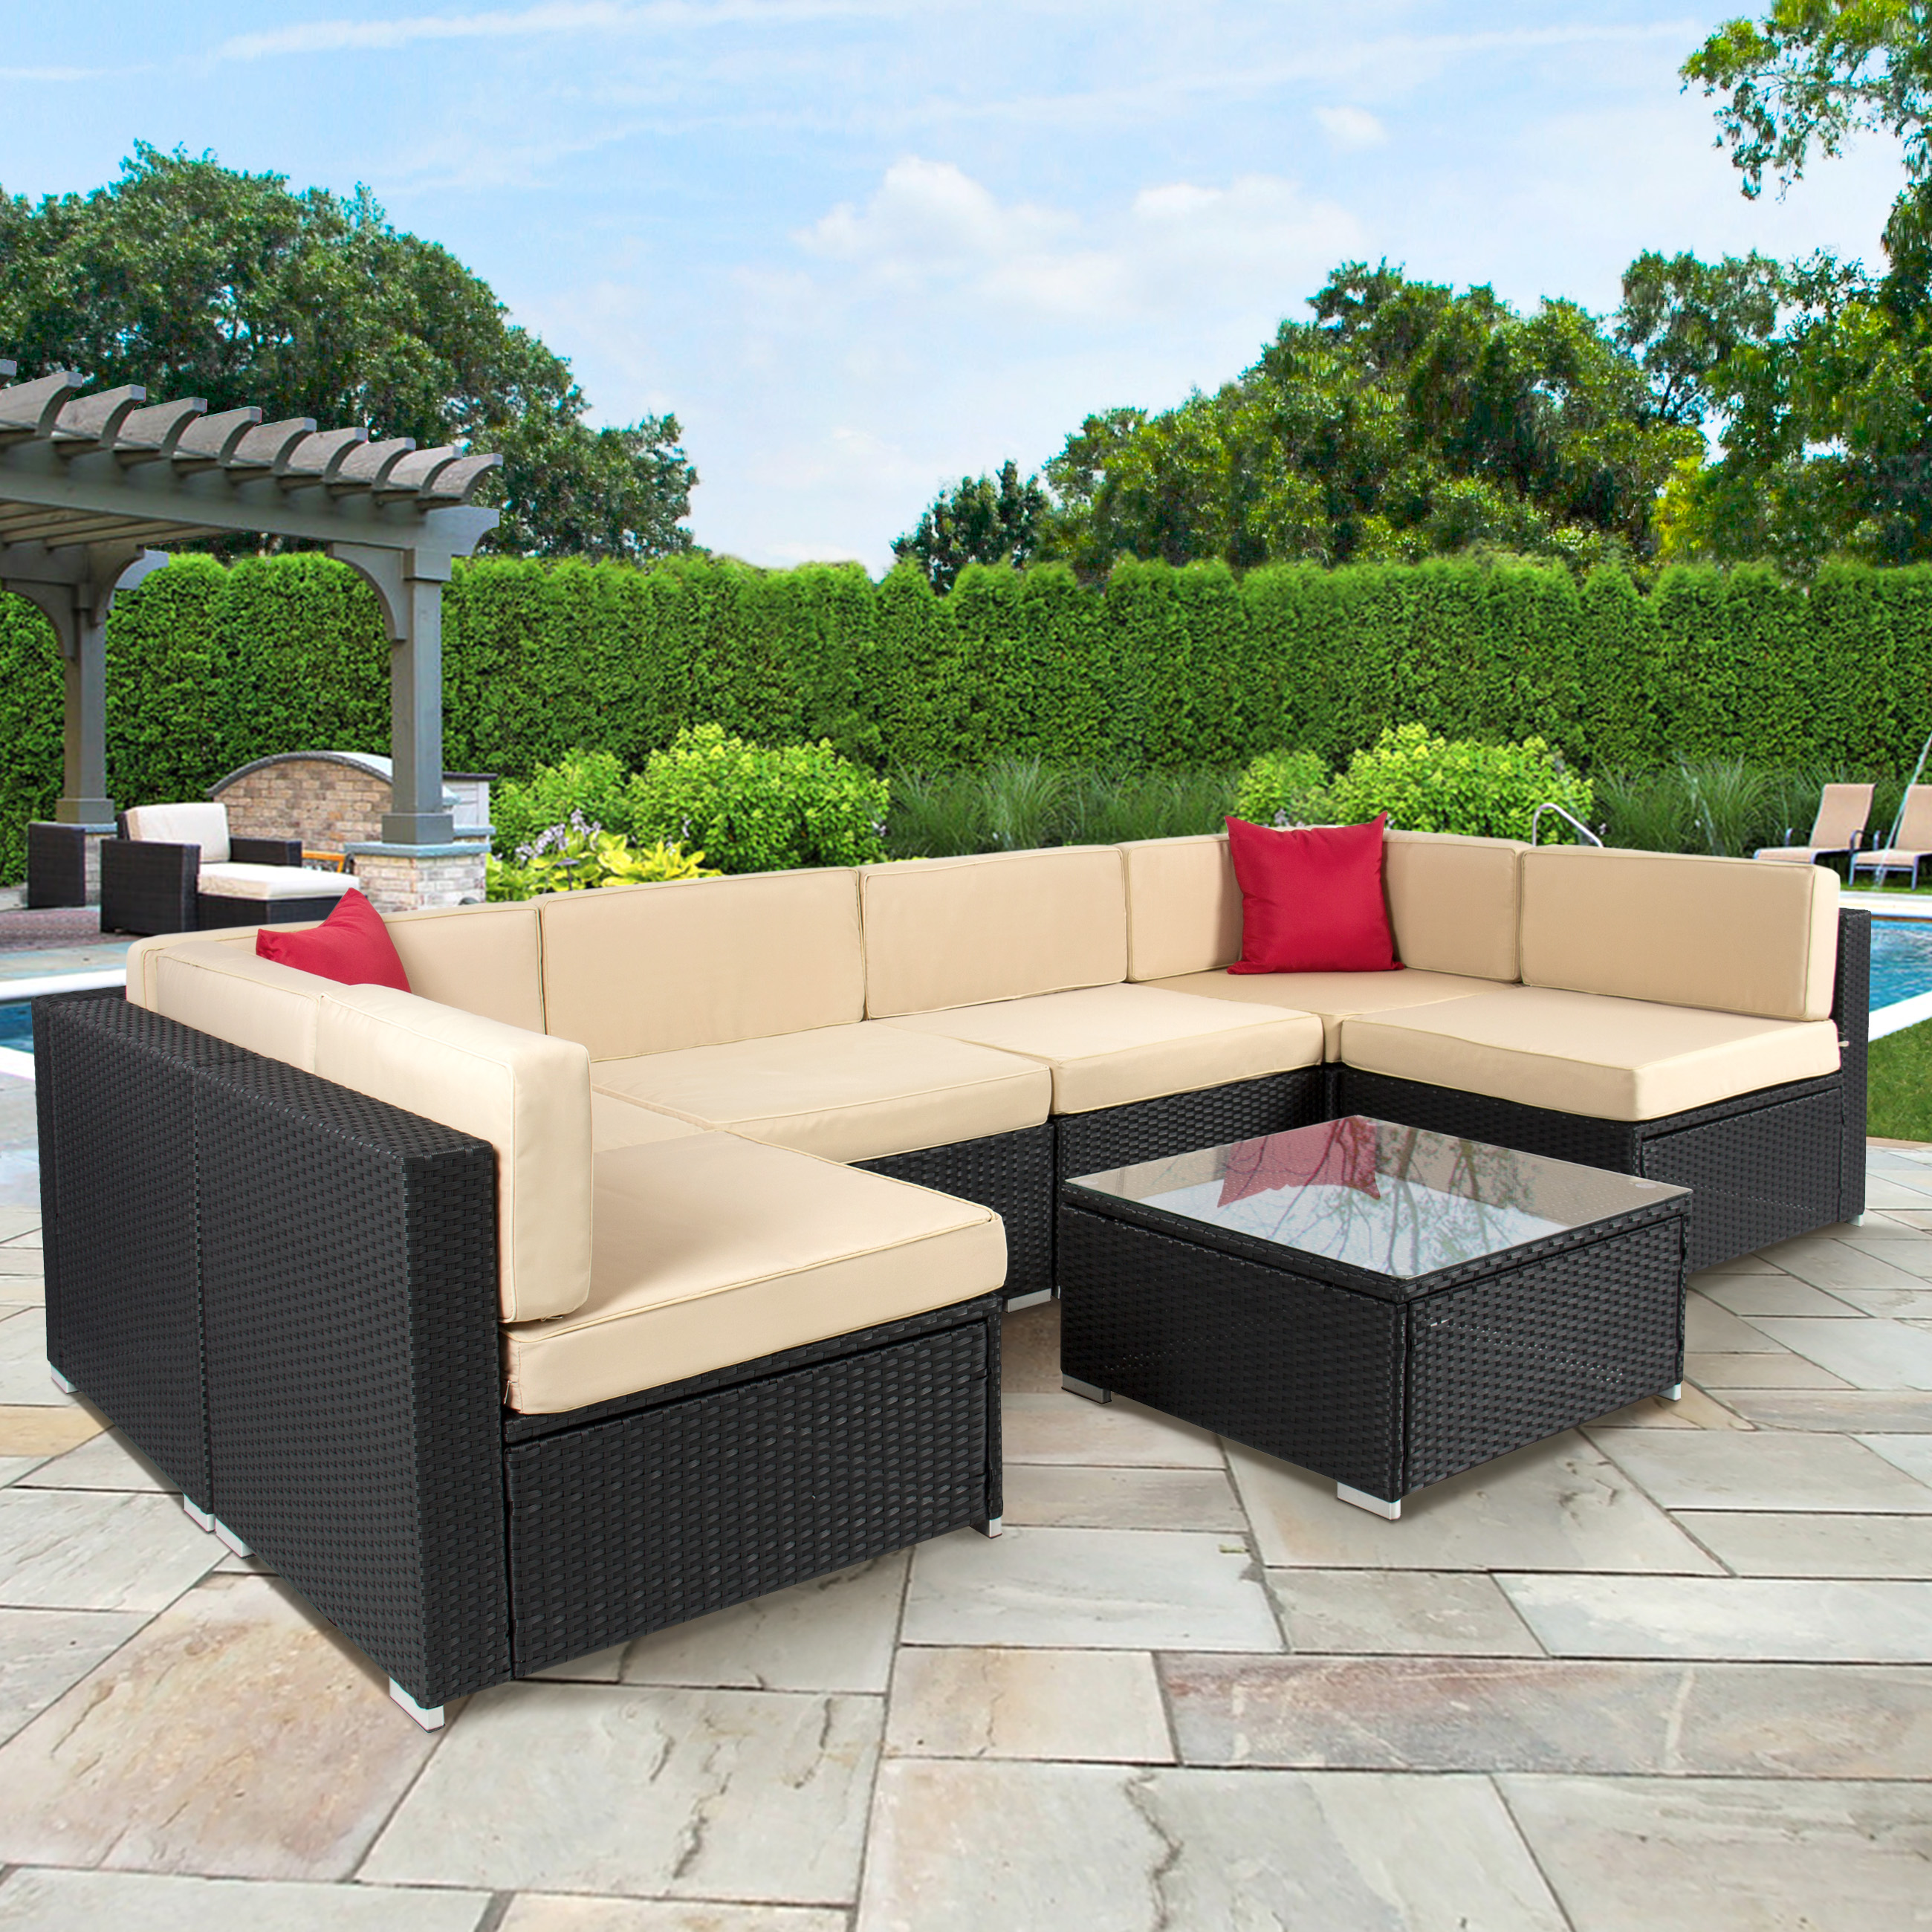 outdoor rattan furniture costway daybed patio sofa furniture round retractable canopy wicker rattan  outdoor WZZHOWD